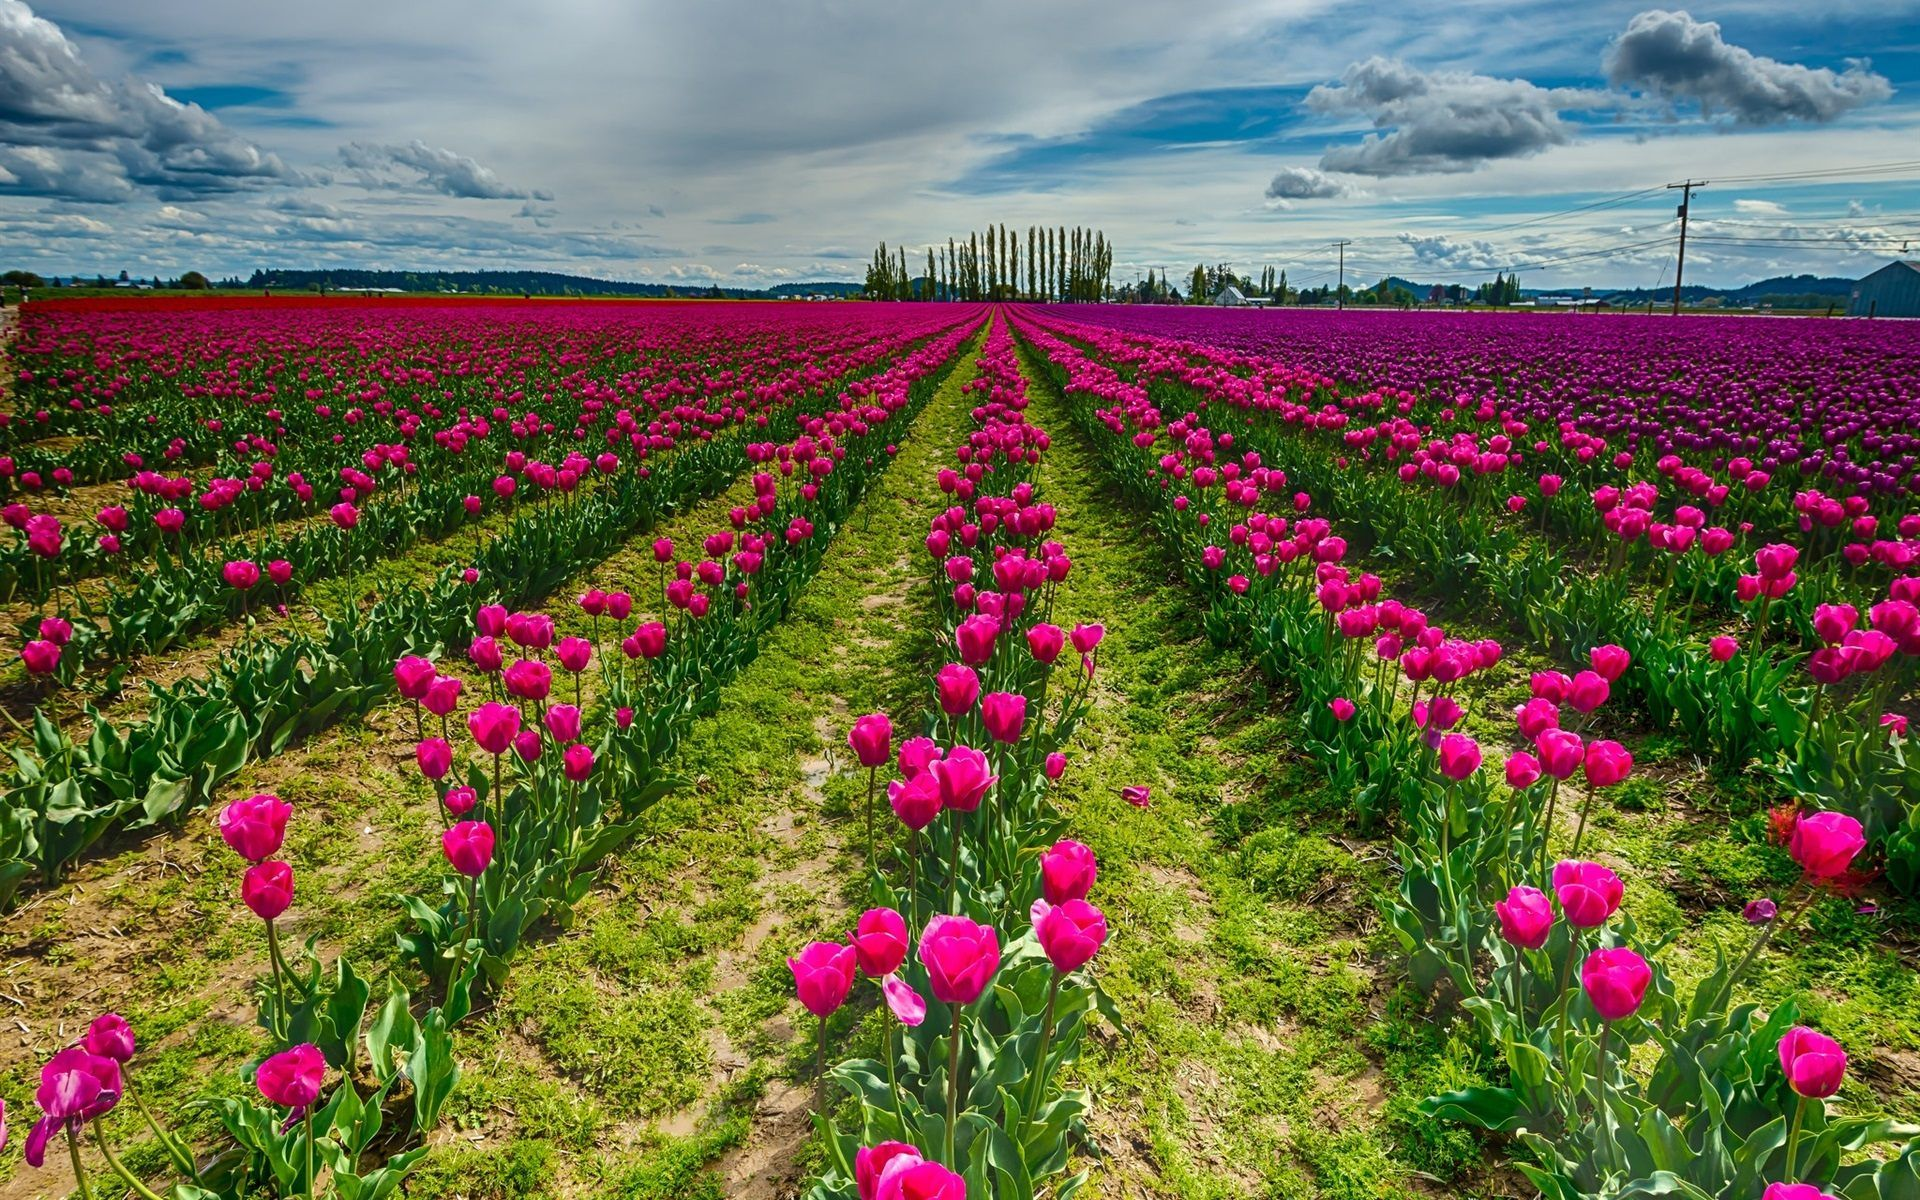 Spring Flowers Tulips Field Sunrise Grass Clouds: Red Tulip Flower Field Wallpaper For Desktop And Mobile In